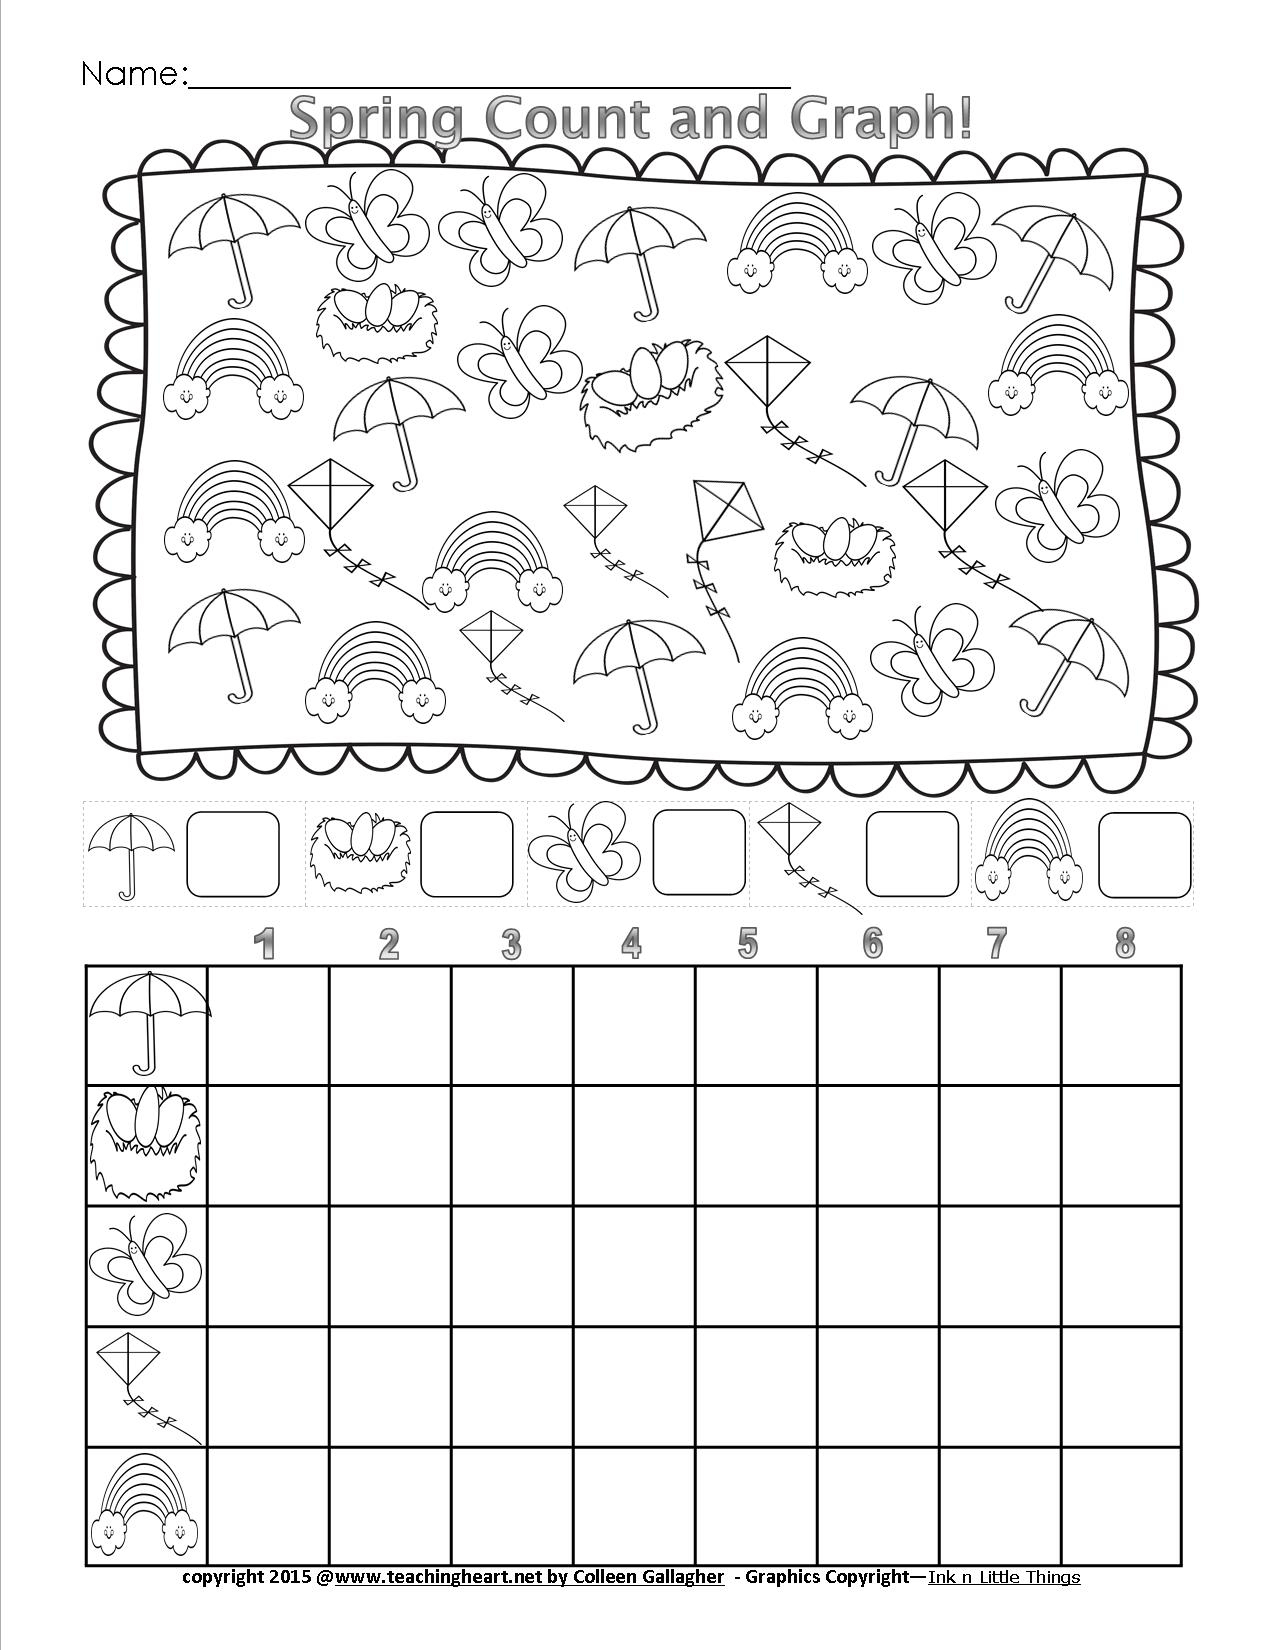 Spring Count And Graph - Free - Teaching Heart Blog Teaching Heart Blog | Free Printable Spring Worksheets For Elementary